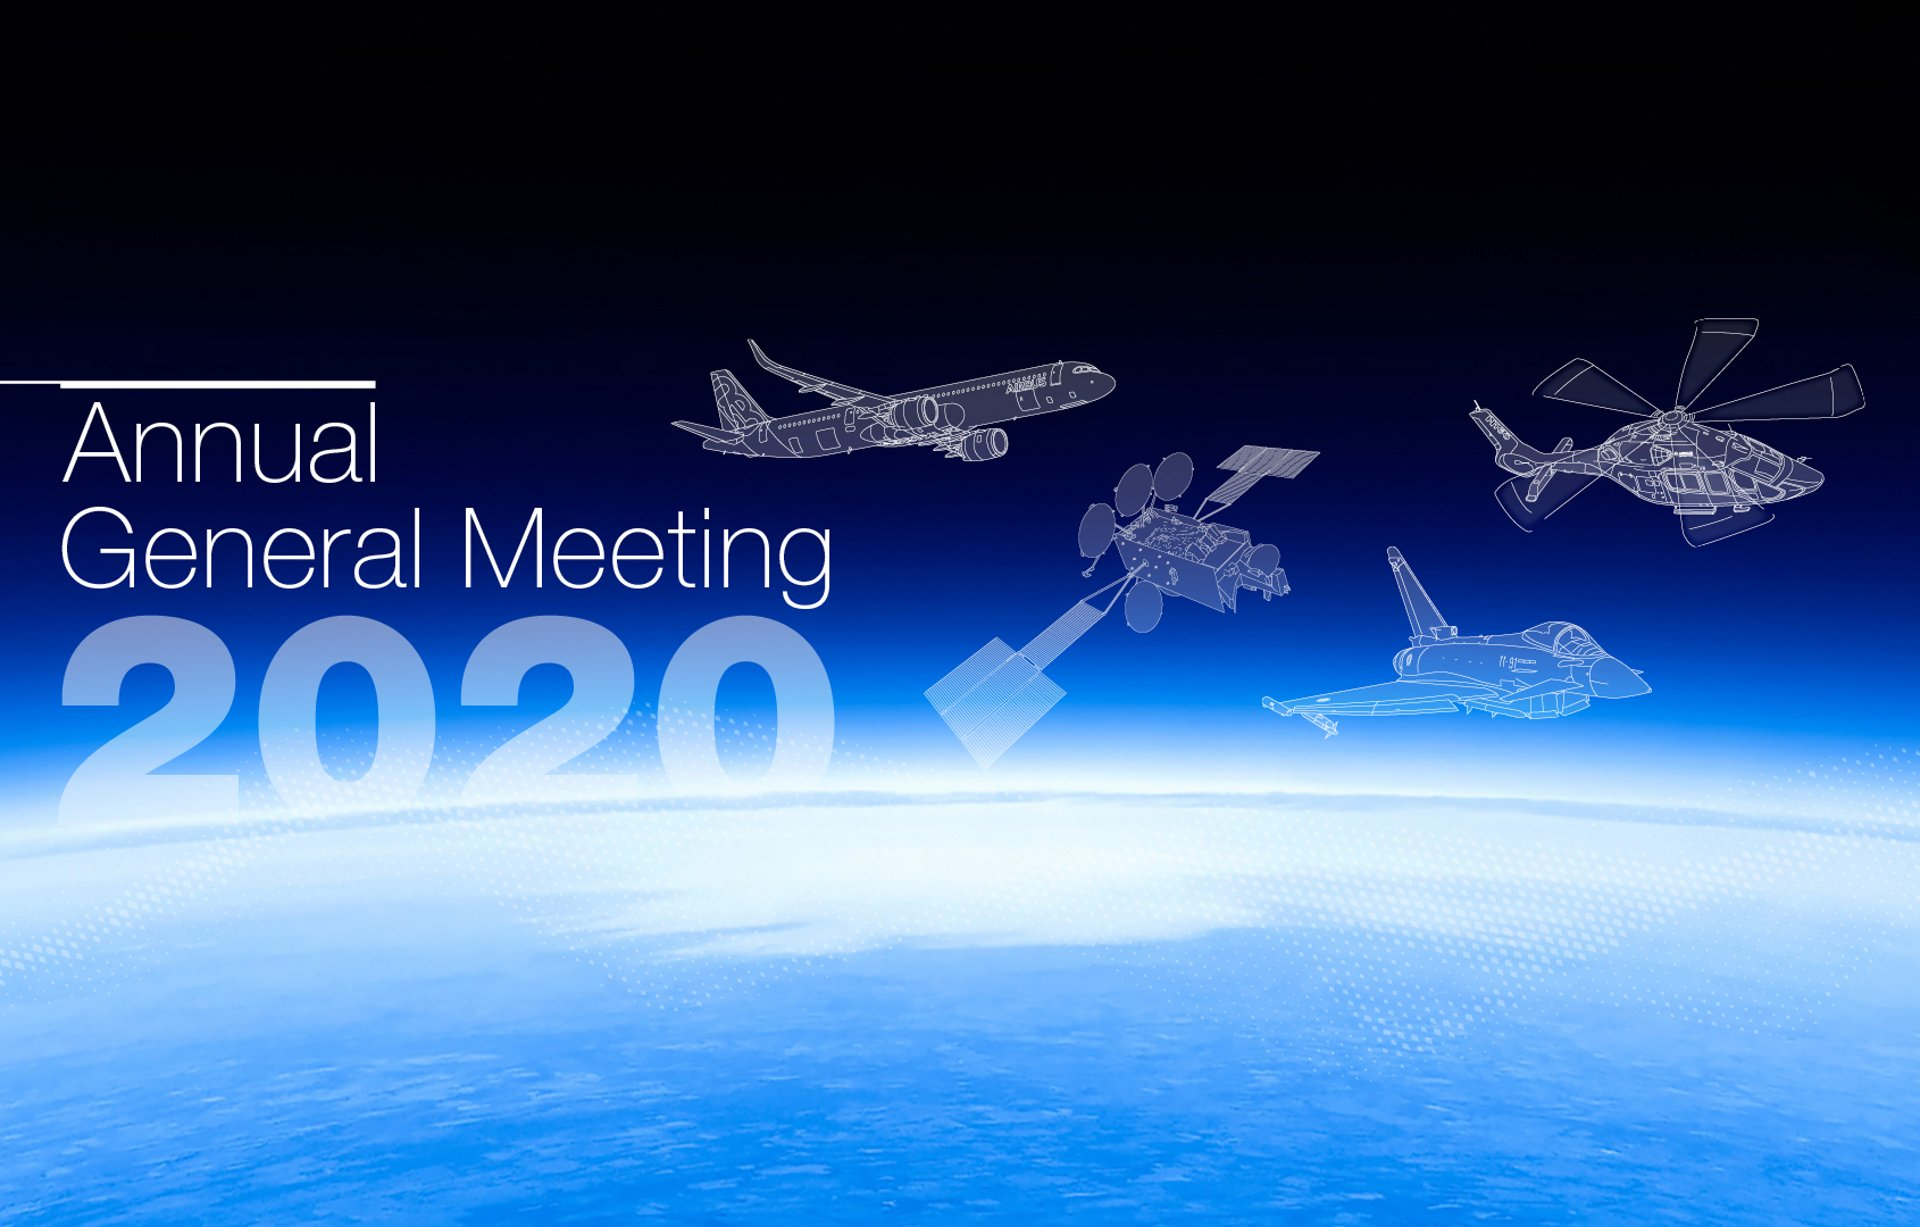 Airbus shareholders elect two new directors at 2020 Annual General Meeting